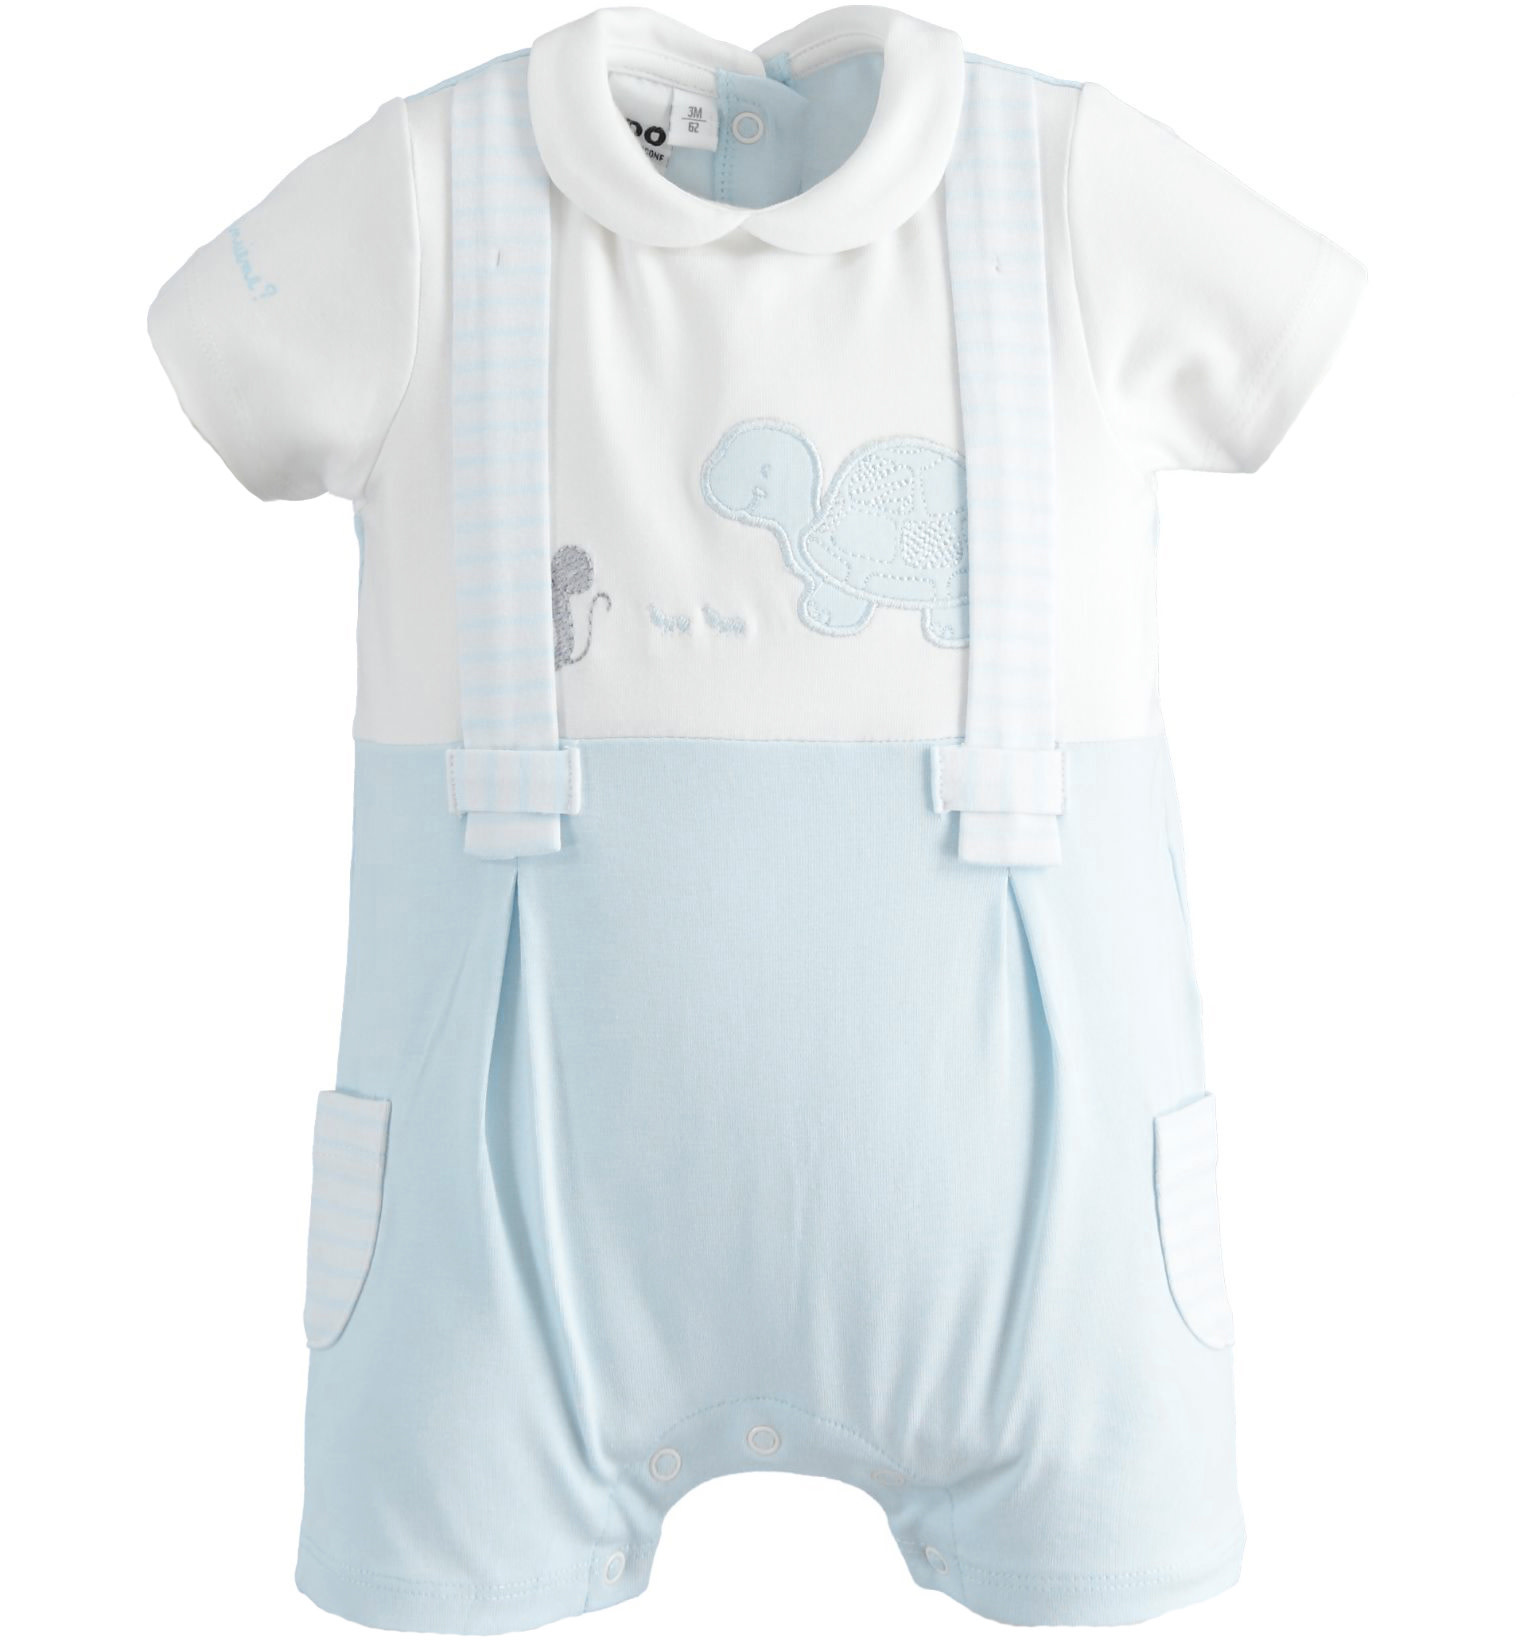 iDo iDO SS20 Baby Boys Blue and White All in One with attached braces J087